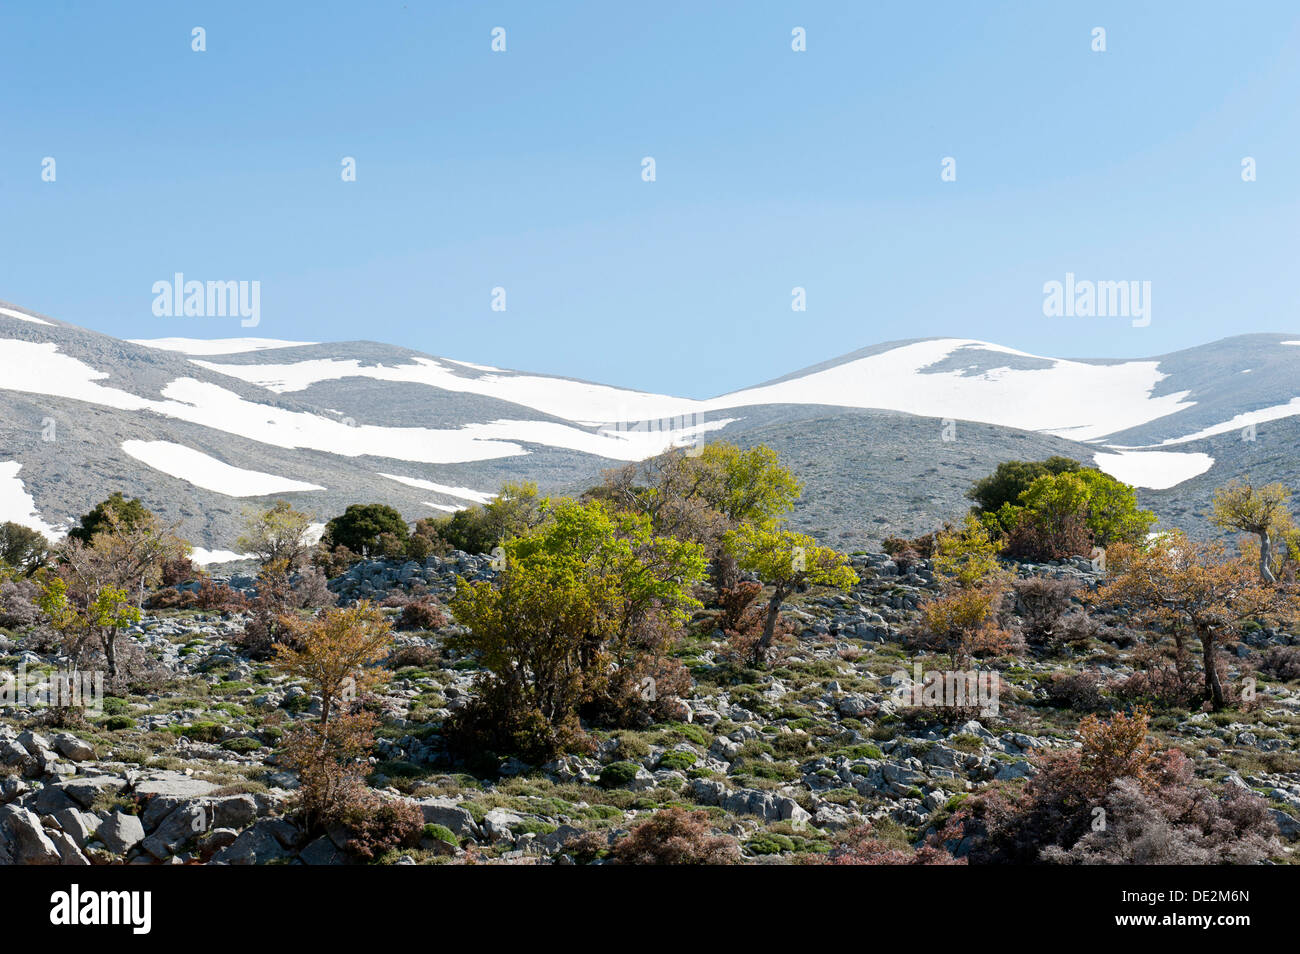 Holm oaks (Quercus ilex) and Thornapple shrubs (Crataegus), mountain forest, Psiloritis mountain or Mount Ida - Stock Image